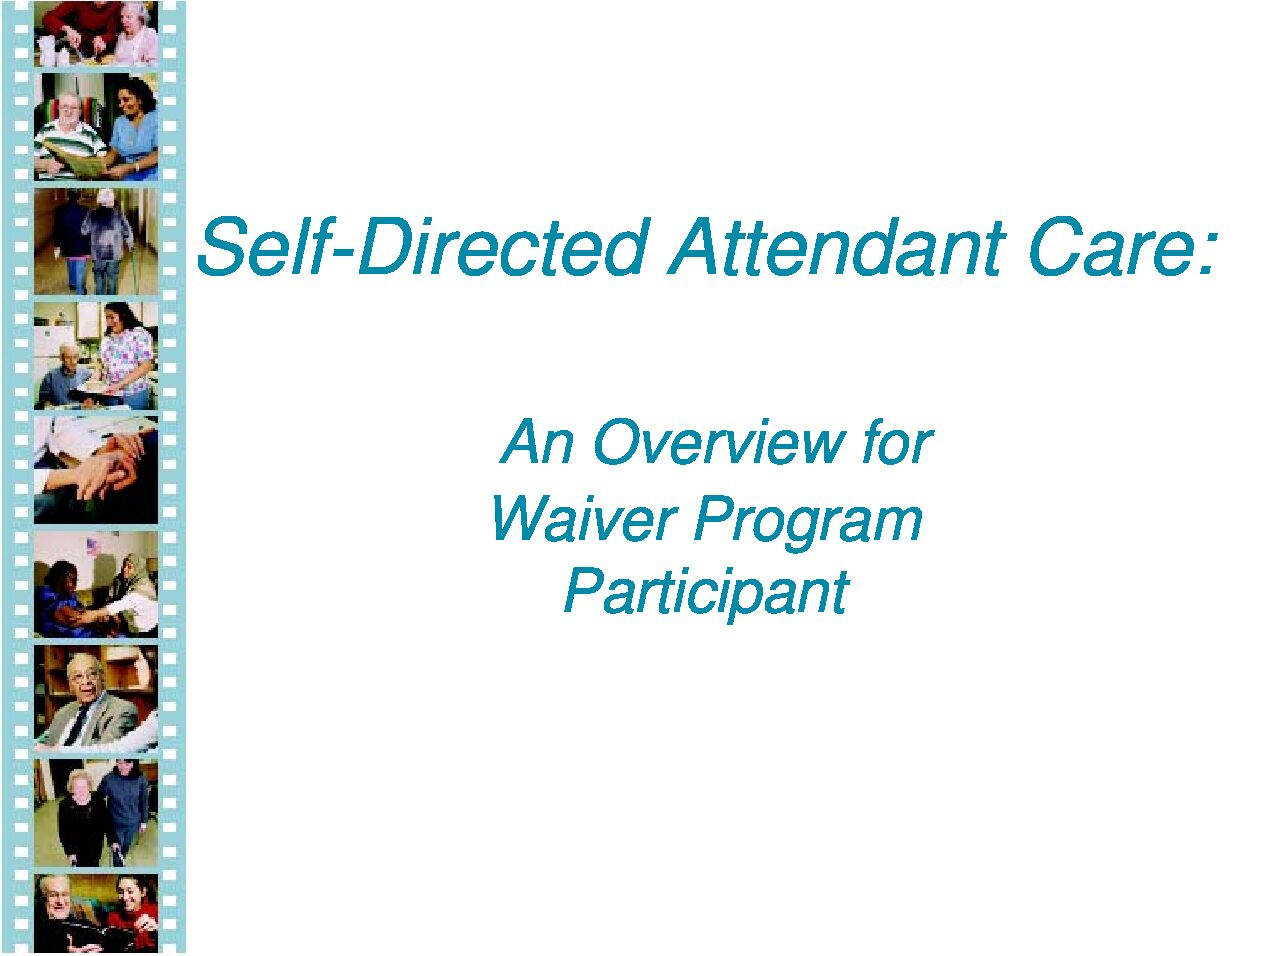 Self-Directed Attendant Care: An Overview for Waiver Program Participant